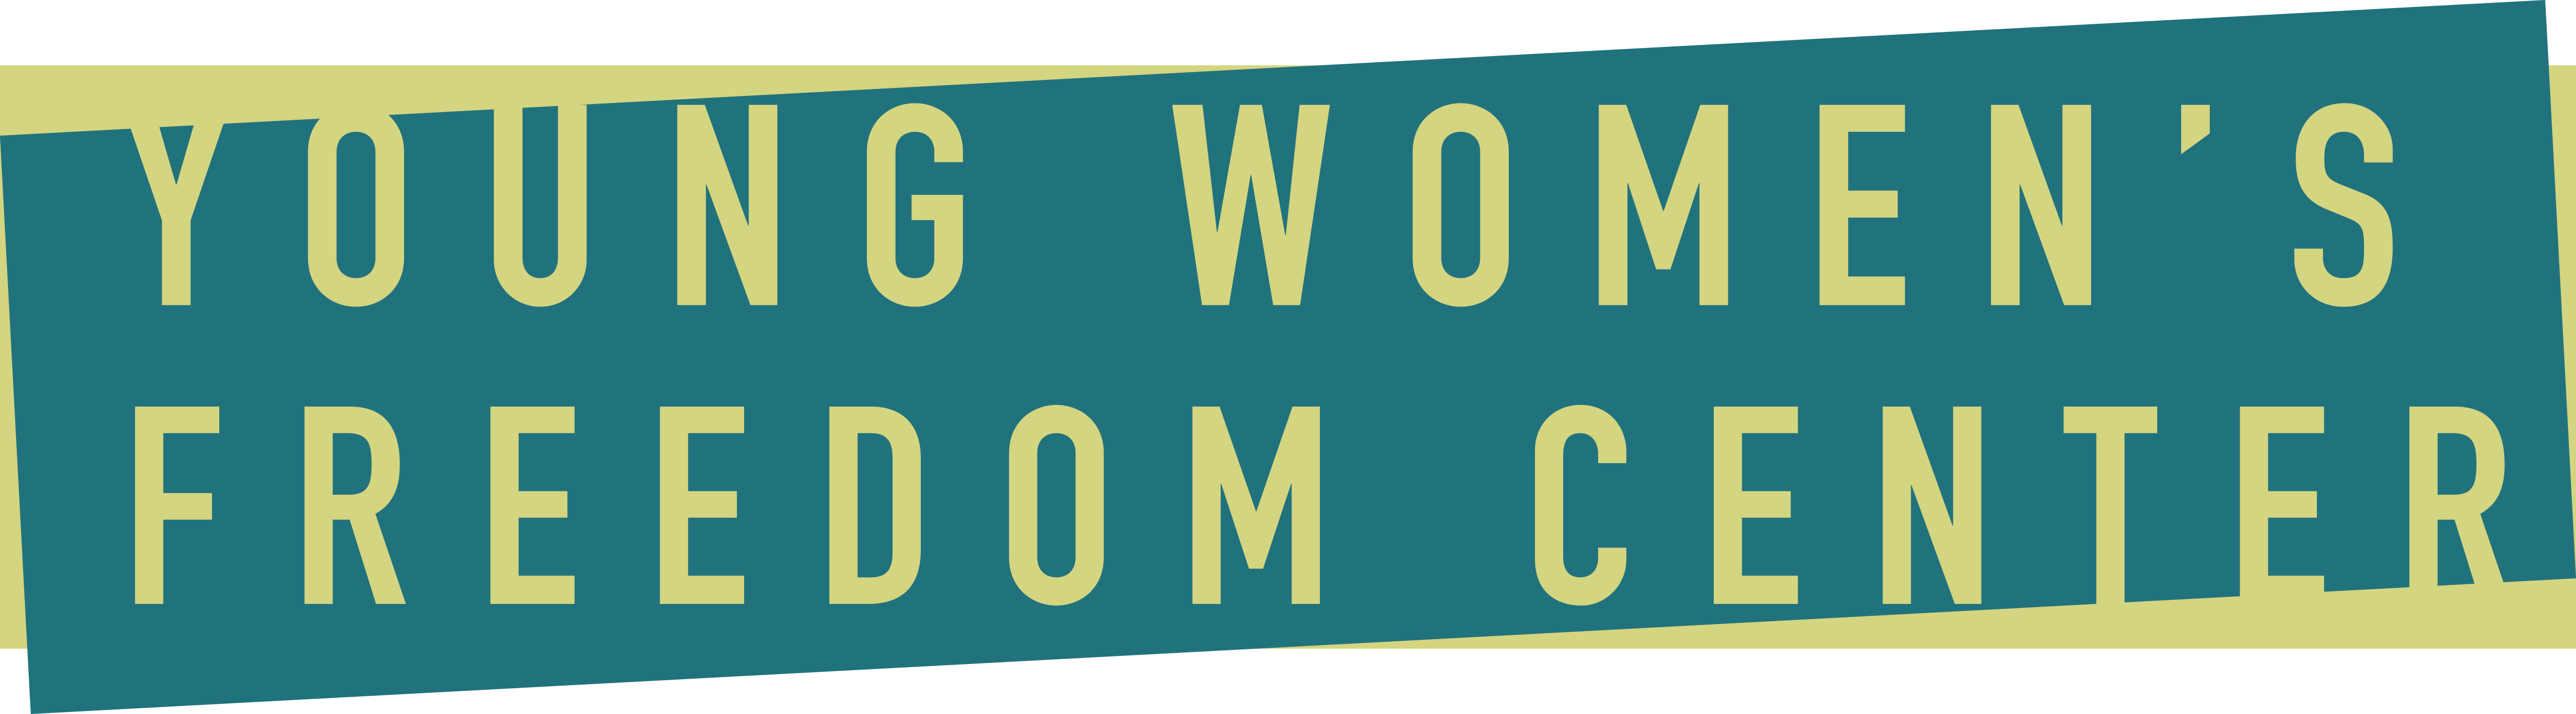 Young Women's Freedom Center logo